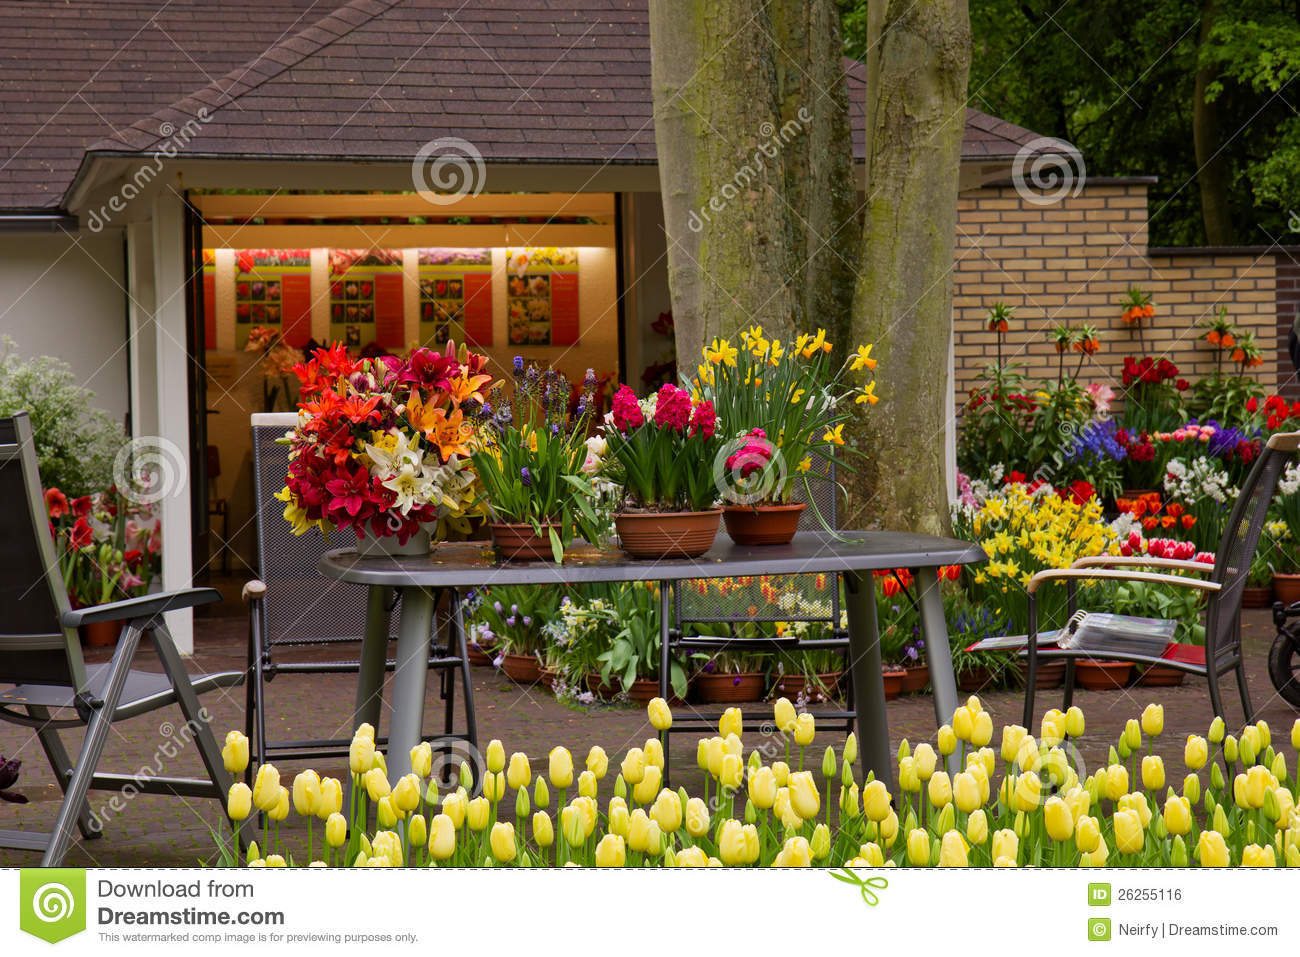 Flower Shop In Keukenhof Garden Stock Photo - Image of green, garden ...